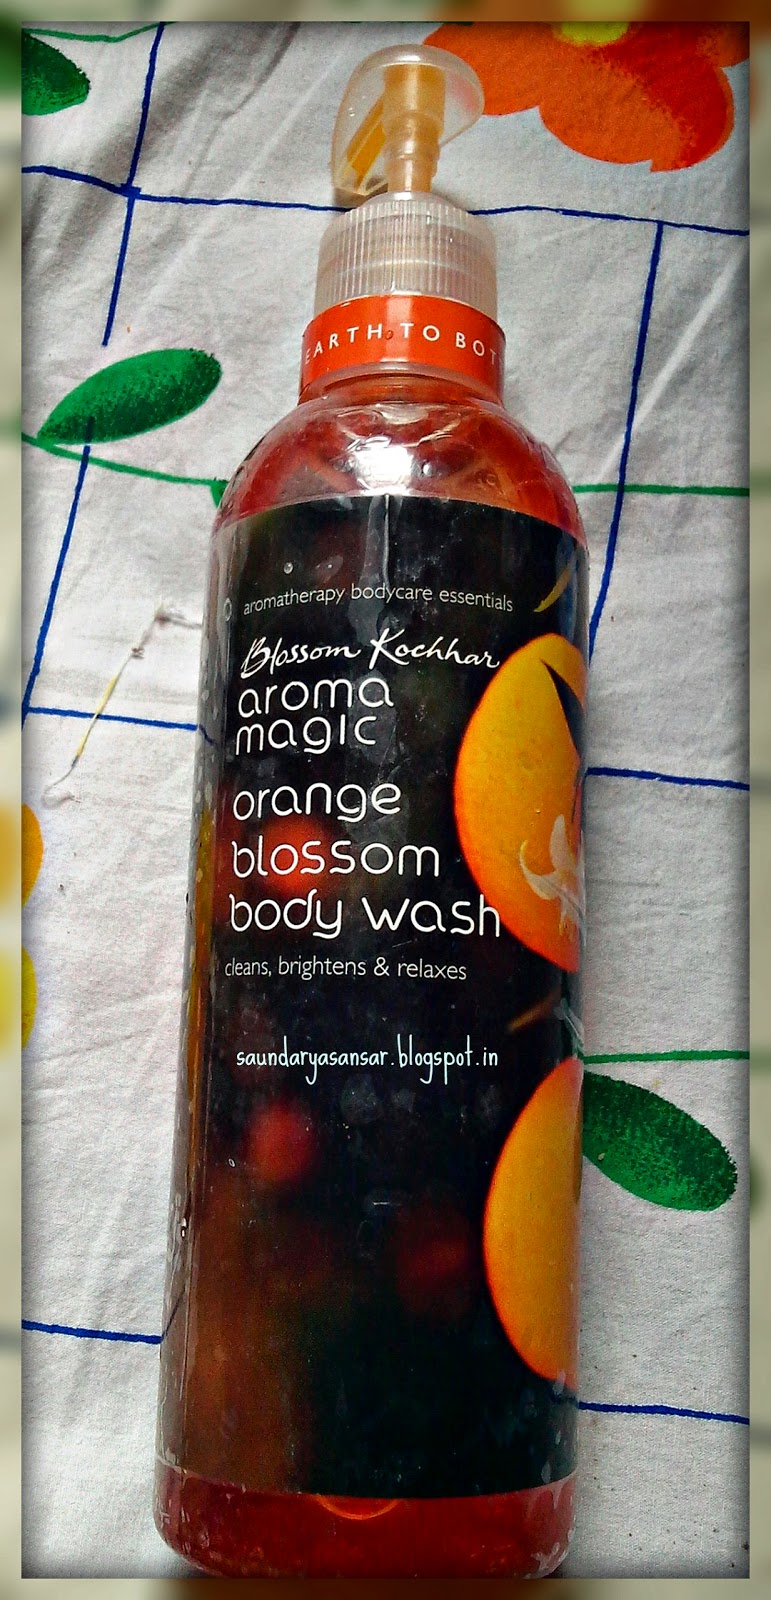 Blossom Kochhar Aroma Magic Orange Blossom Body Wash review